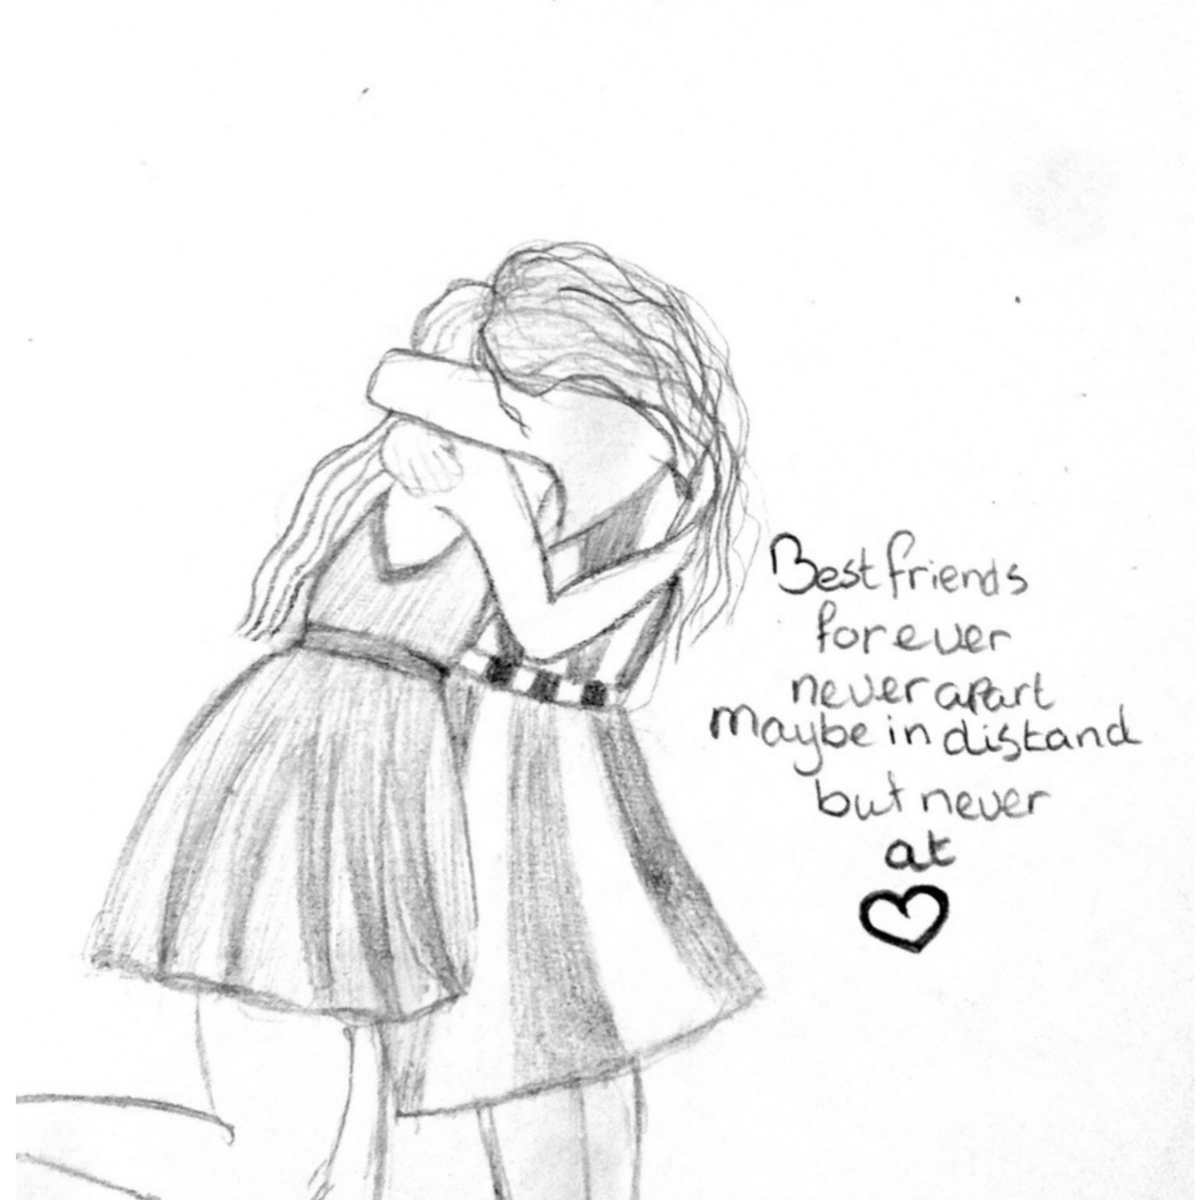 Pencil drawings of best friends cute pencil sketches of frie